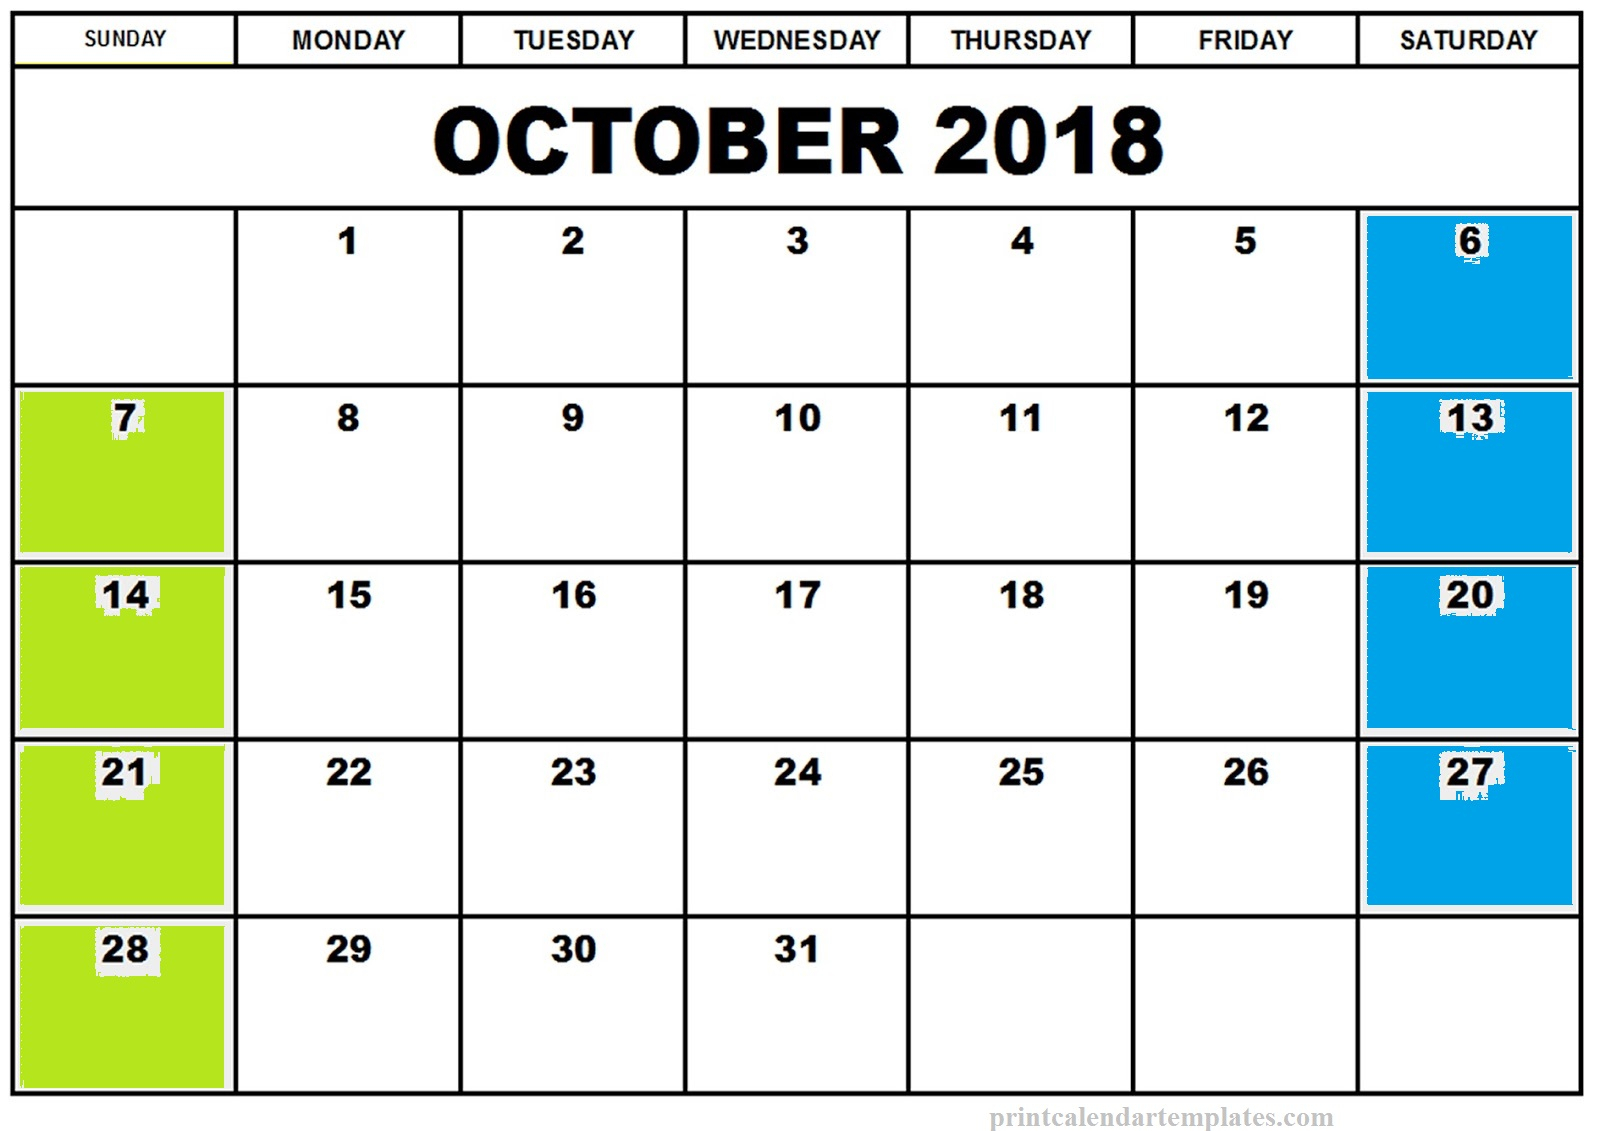 October 2018 Blank Calendar Printable Planner Templates throughout Cute Blank Calendar Page Template